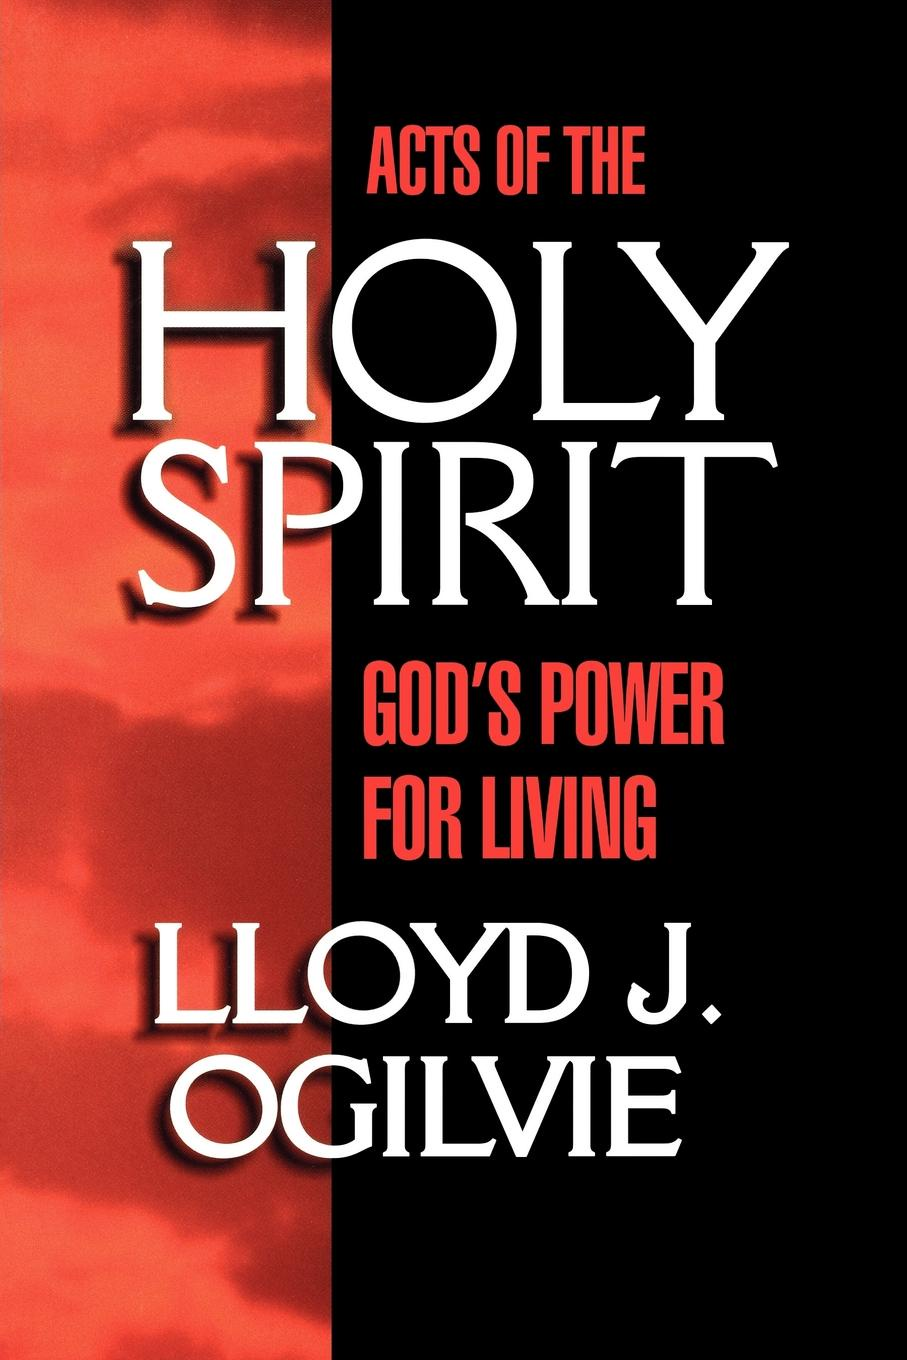 Lloyd John Ogilvie Acts of the Holy Spirit. God's Power for Living cygnet brown living today the power of now